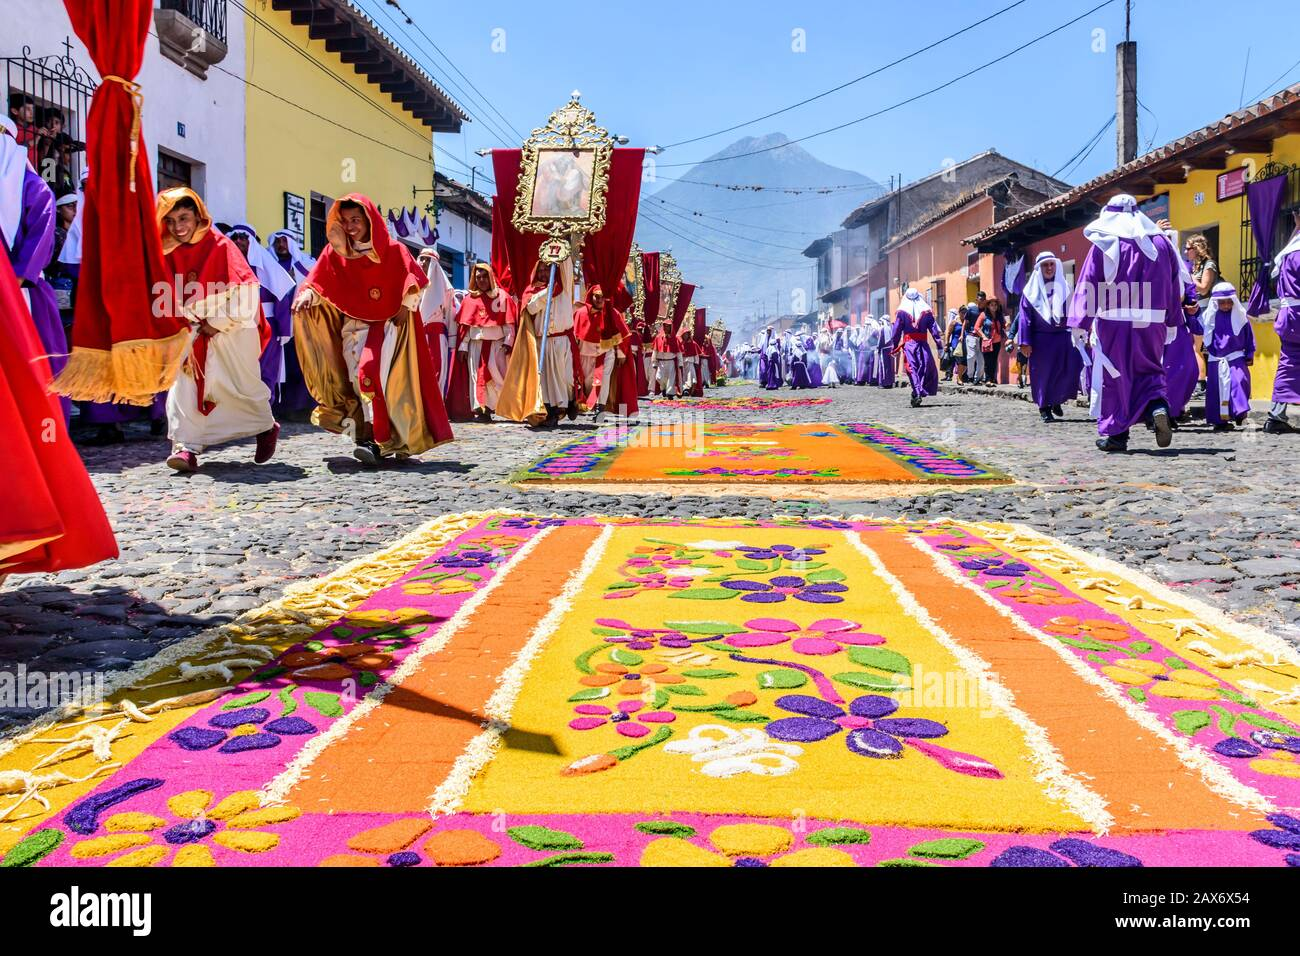 Antigua, Guatemala -  April 14, 2019: Palm Sunday procession & procession carpets in UNESCO World Heritage Site with famed Holy Week celebrations. Stock Photo